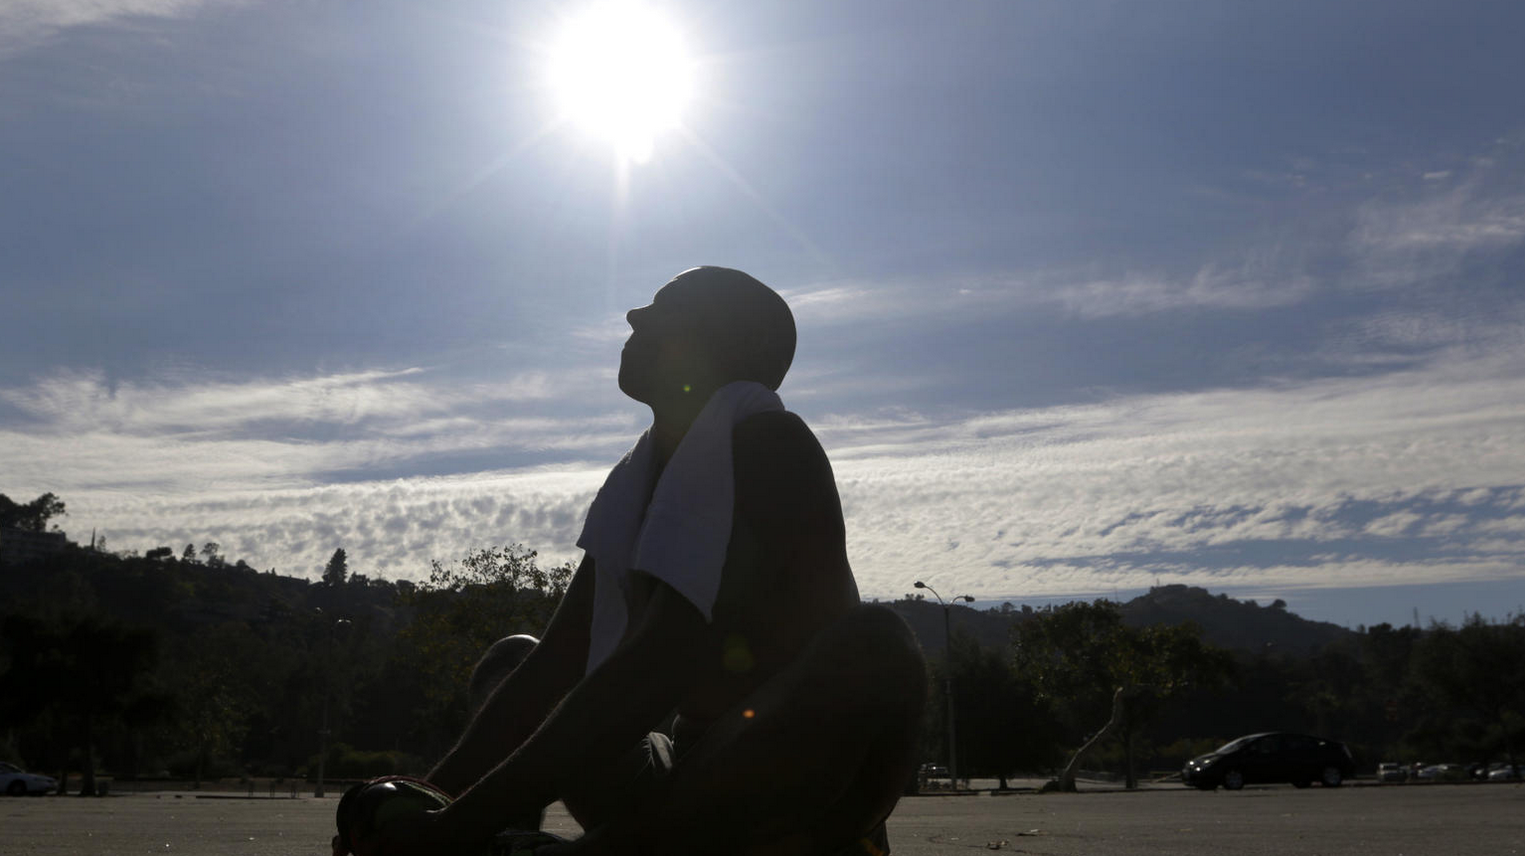 Eddie Villegas takes a breather after a vigorous run on this sweltering day at the Rose Bowl in Pasadena. (Credit: Lawrence K. Ho / Los Angeles Times)